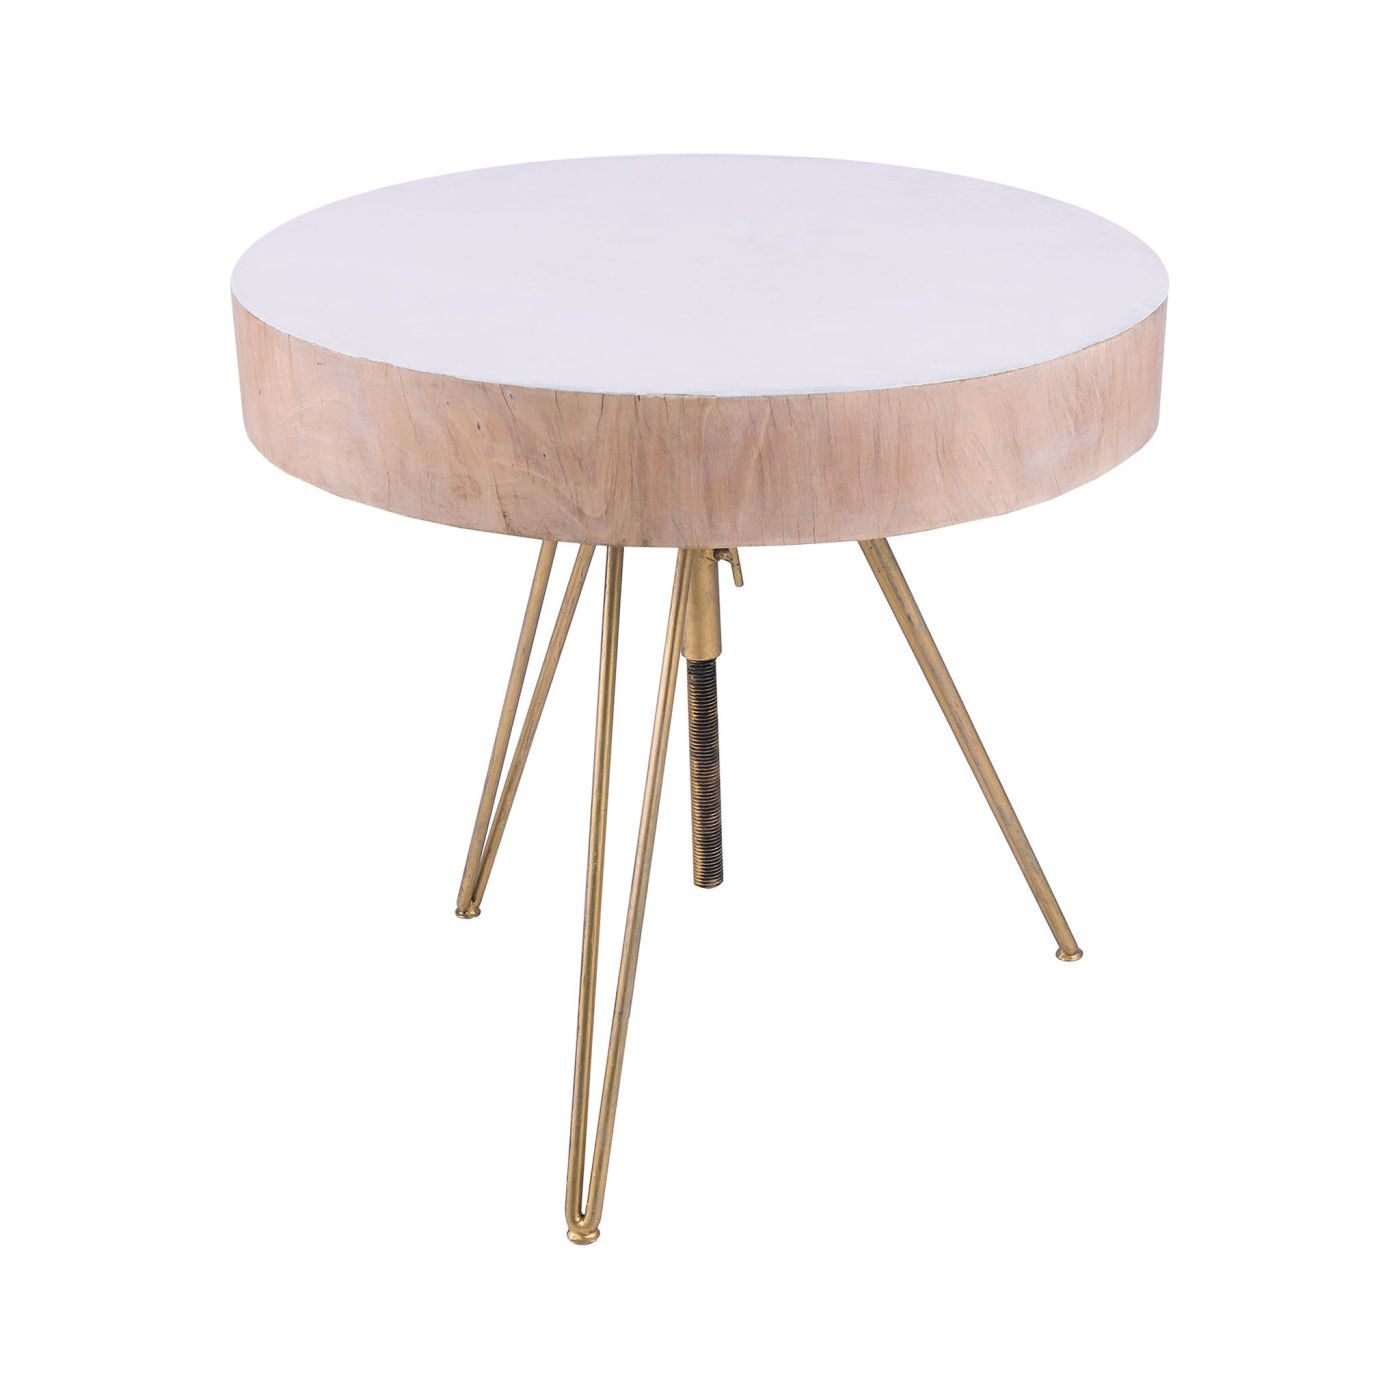 elk group biarritz suar wood accent table with gold side tables metal legs whitegold white sun umbrella base red end tall narrow sofa large farmhouse dining house lights timber